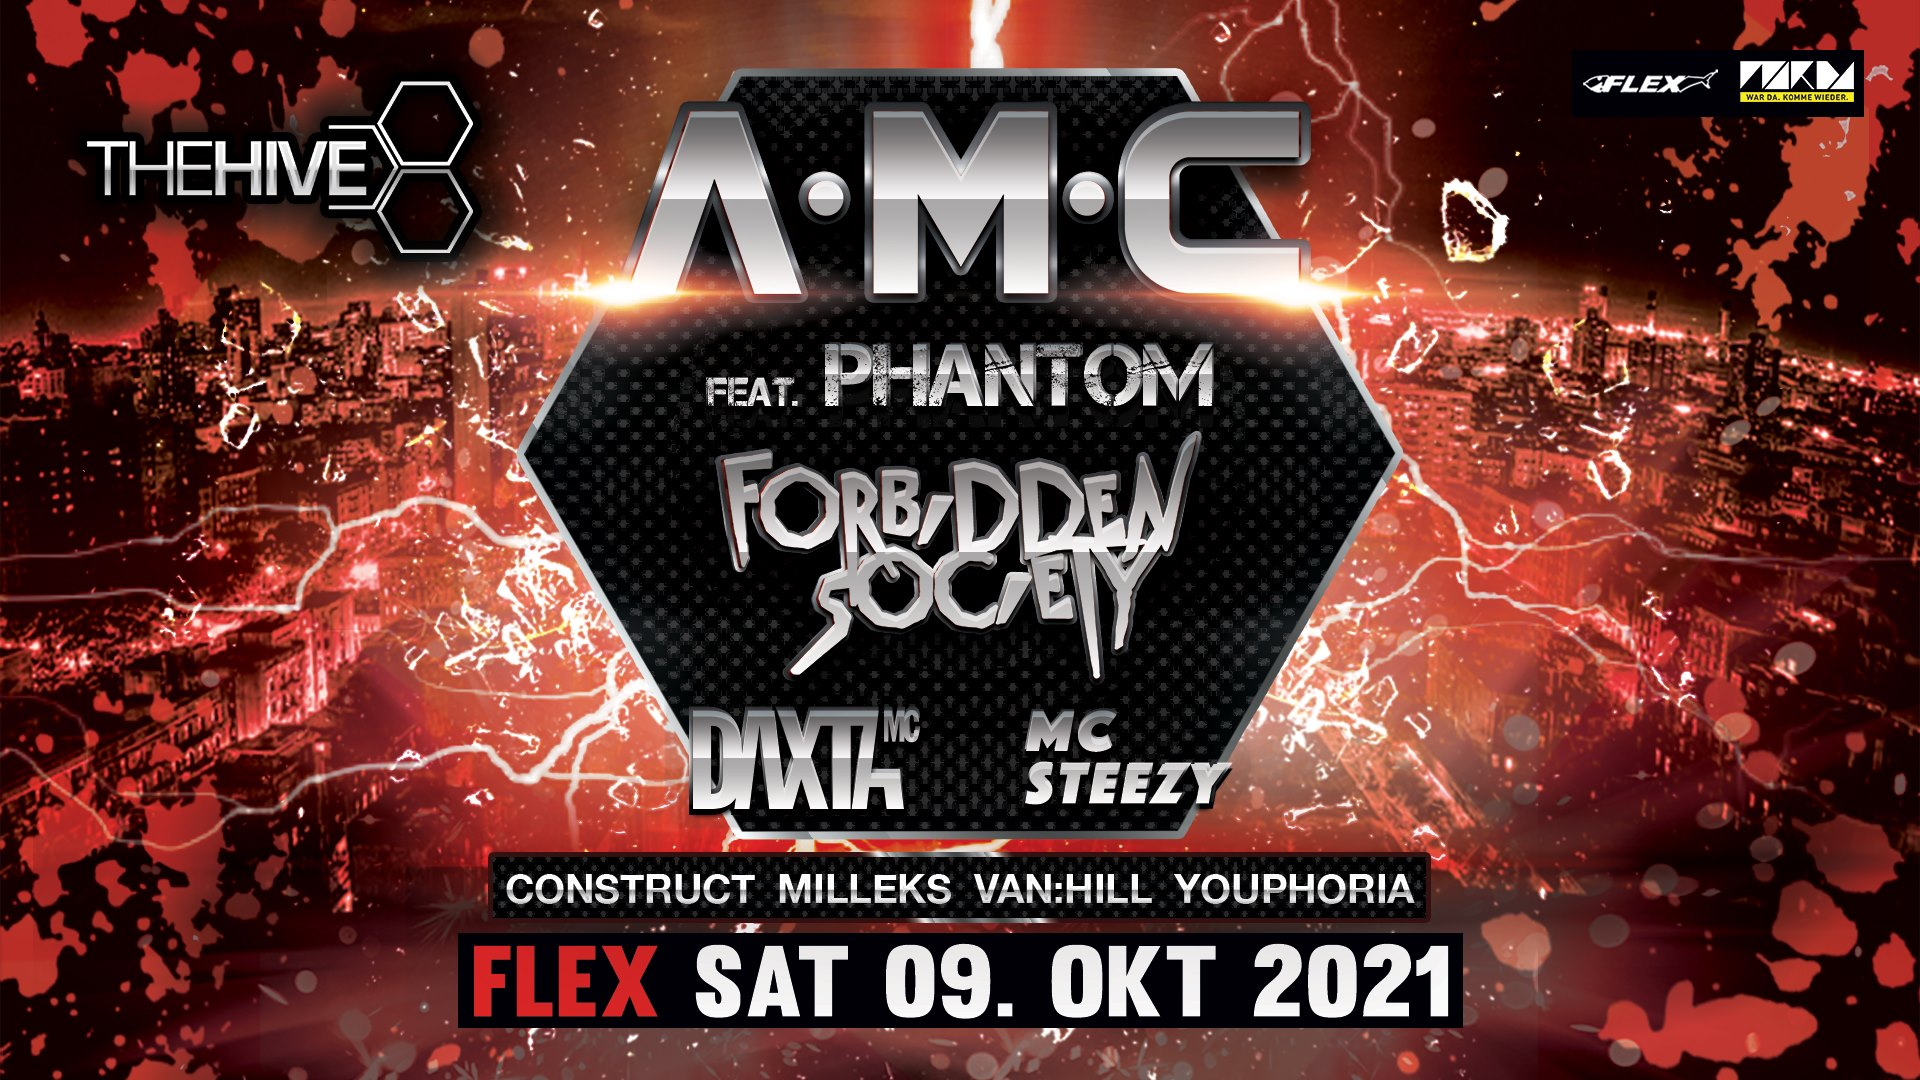 Events Wien: THE HIVE pres. A.M.C feat. Phantom & Forbidden Society